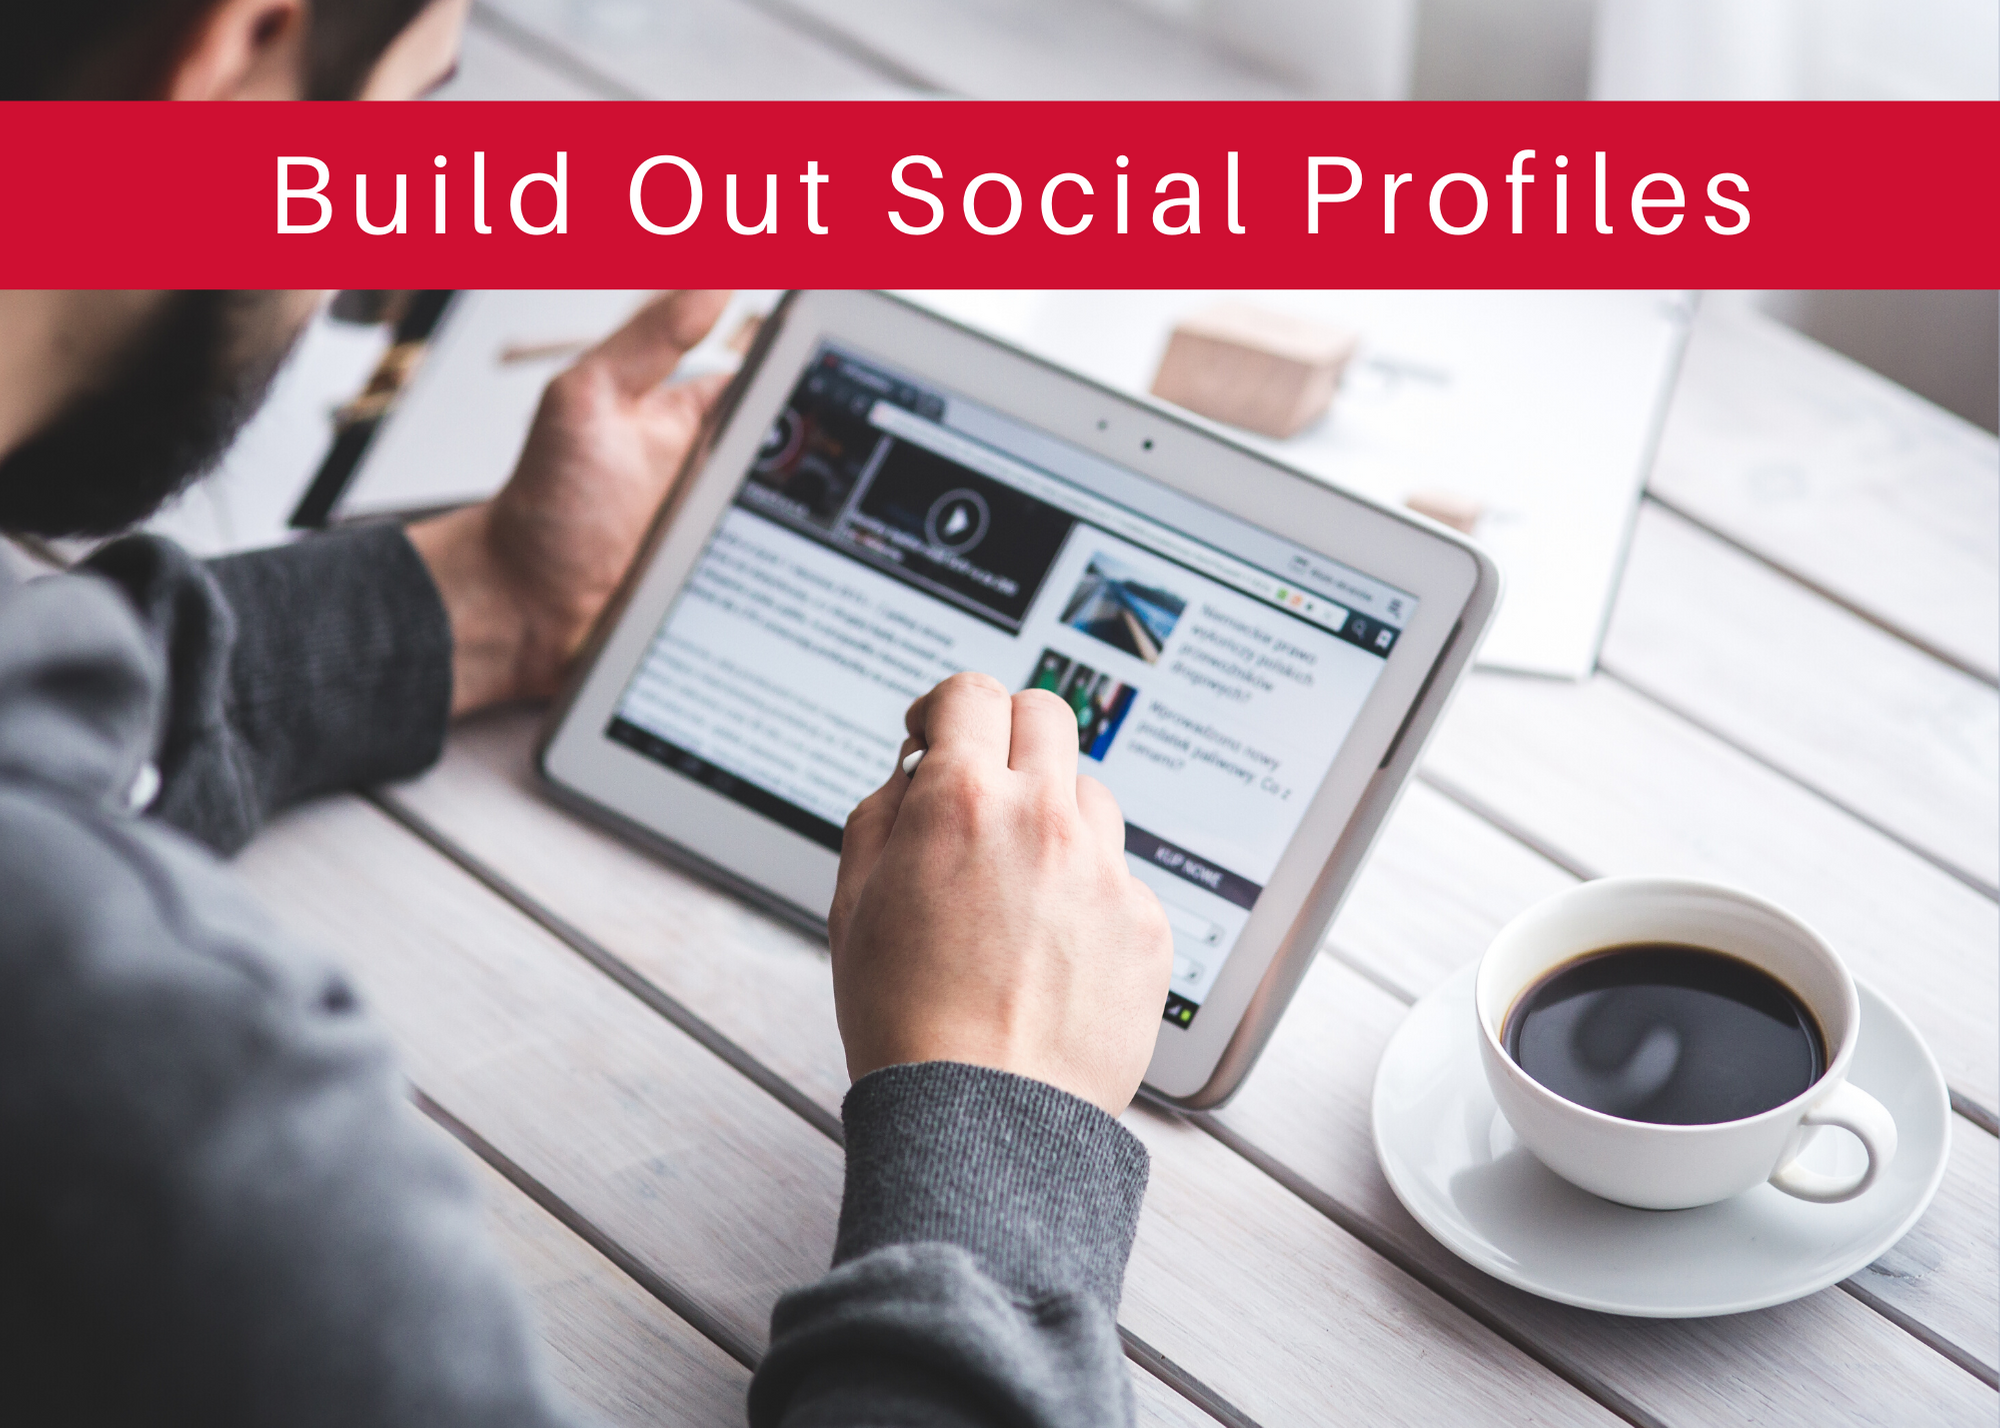 build out social profiles - tablet